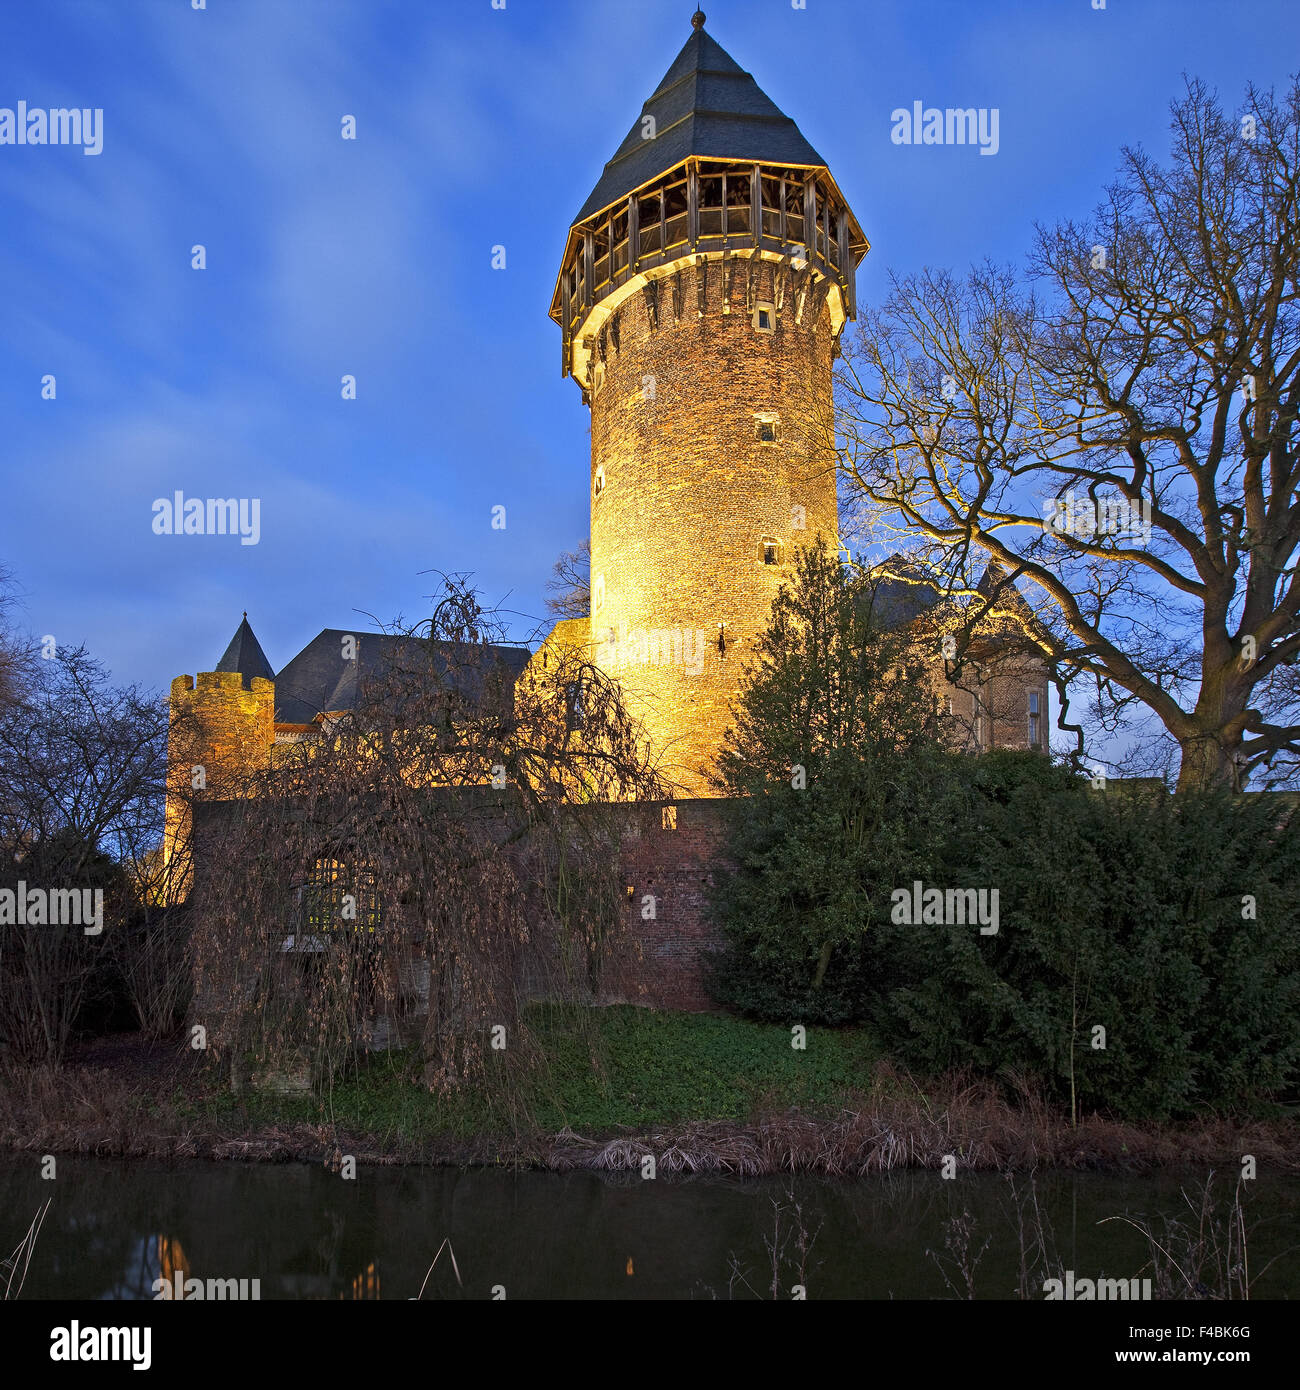 Illuminated Linn Castle, Krefeld, Germany. - Stock Image